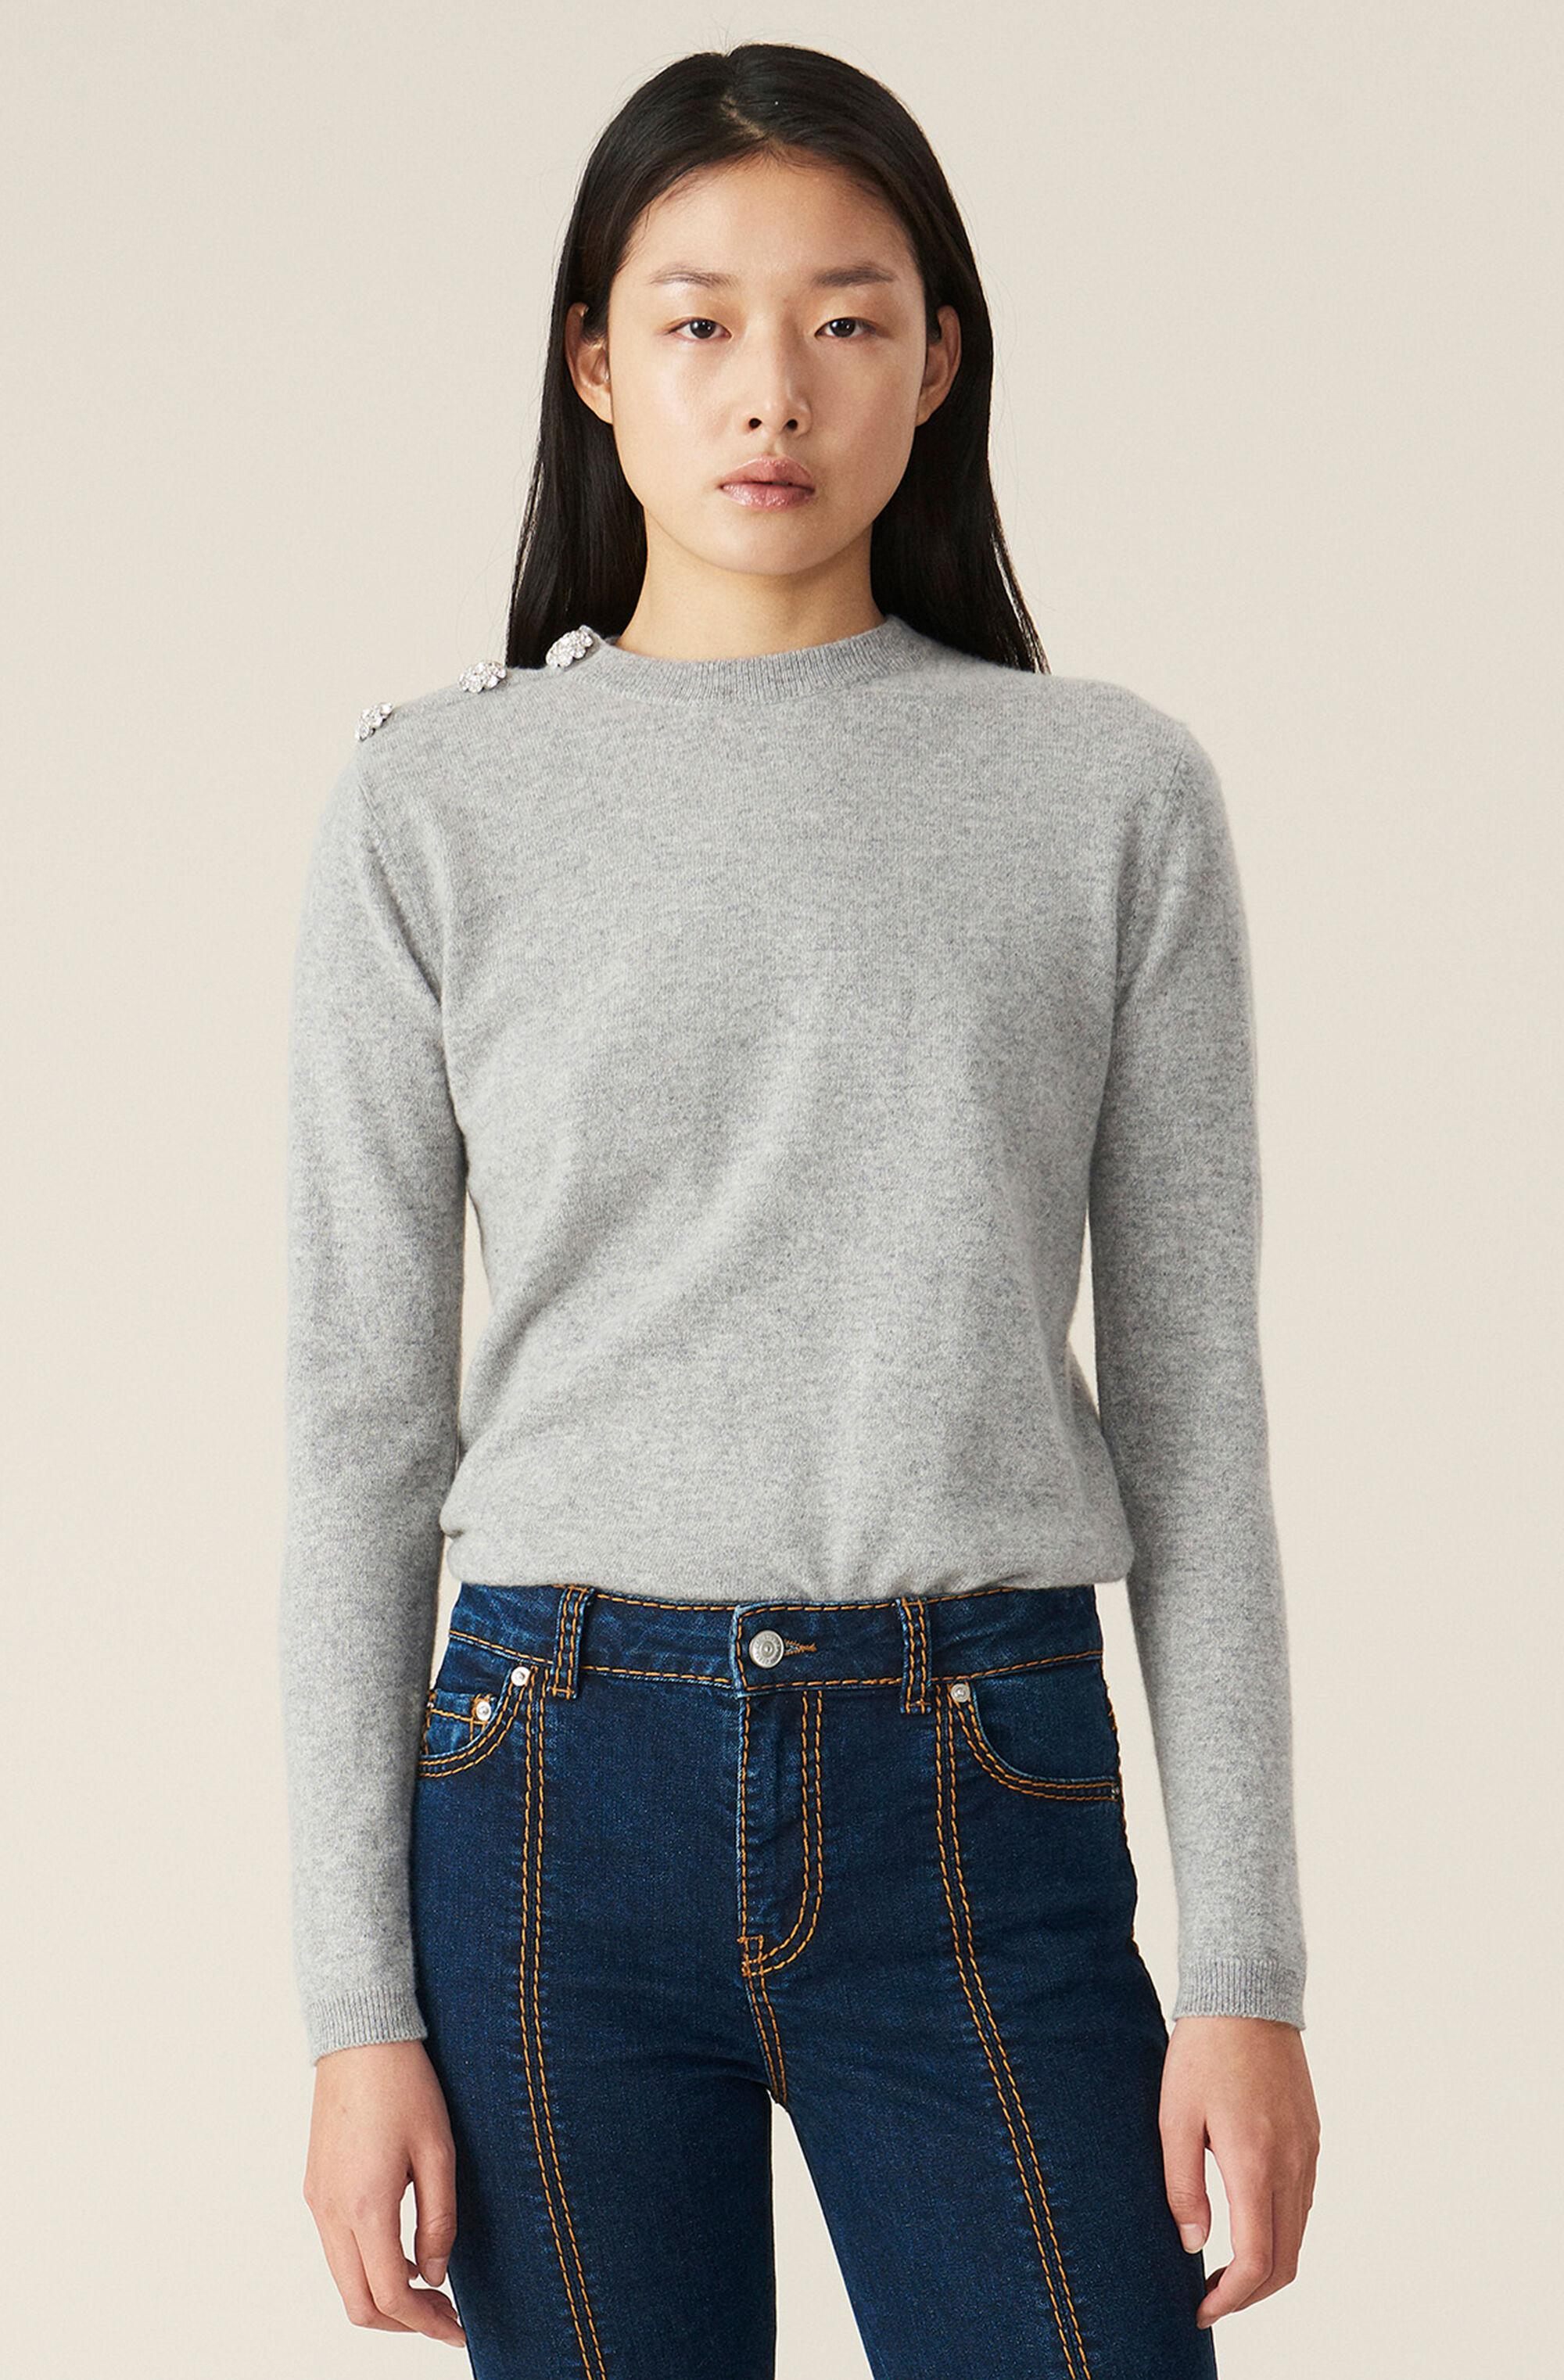 Cashmere Knit Pullover - Solid 0